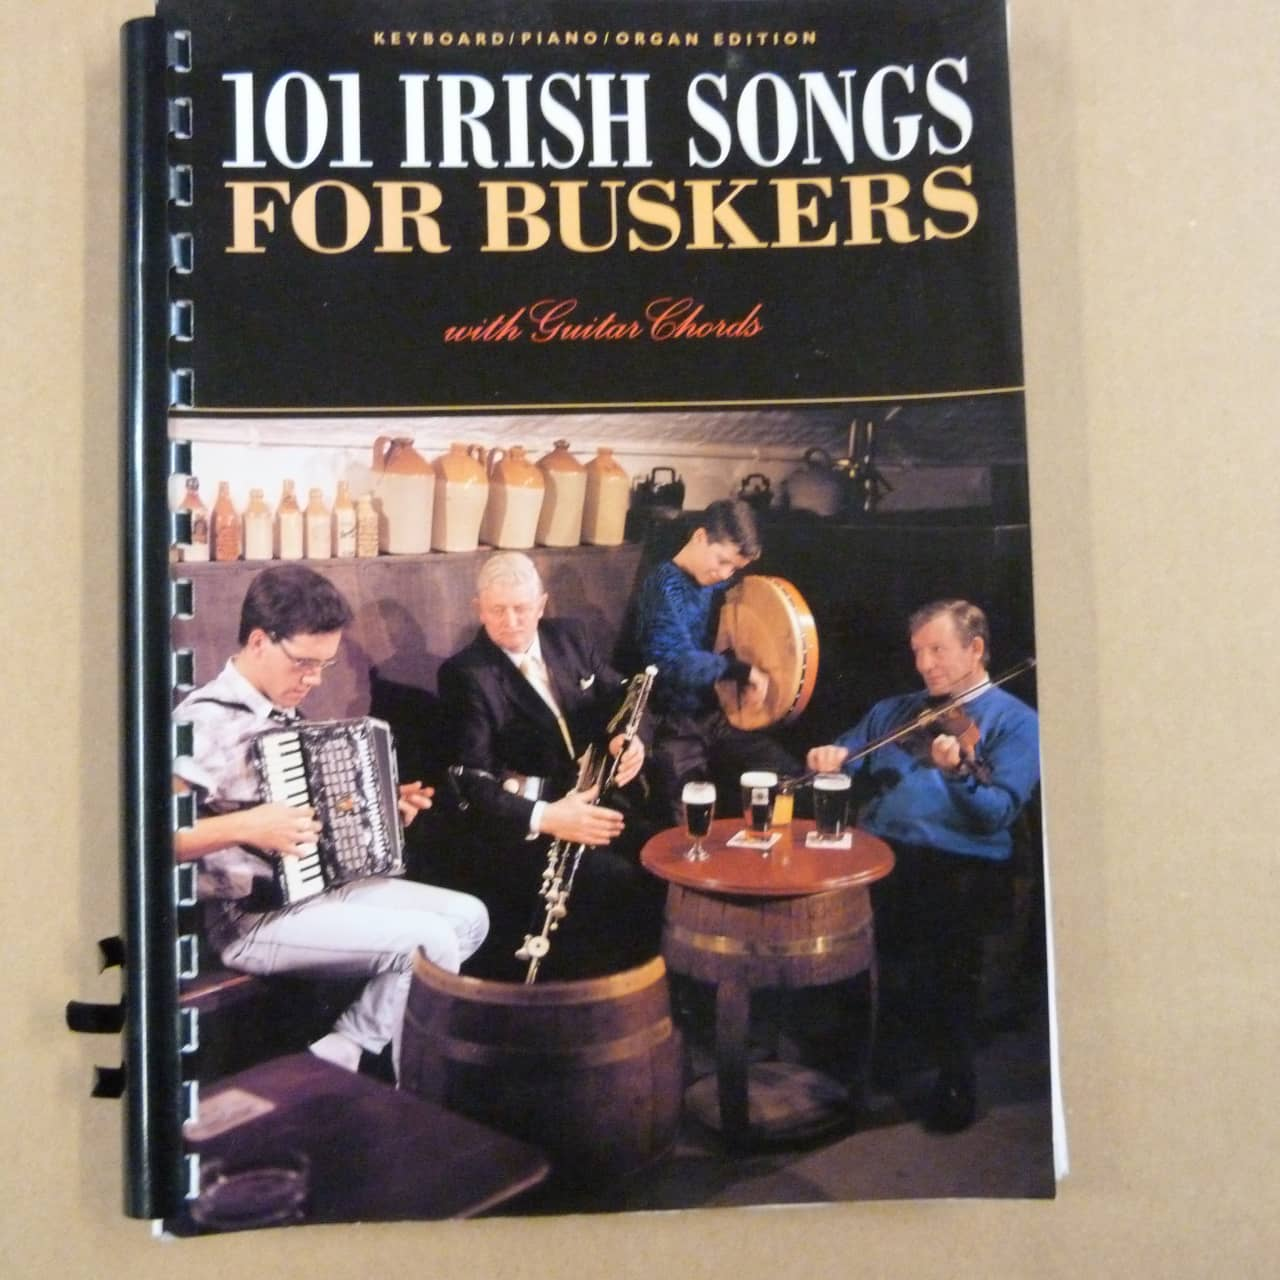 Songbook 101 Irish Songs For Buskers Piano Organ Ed With Reverb